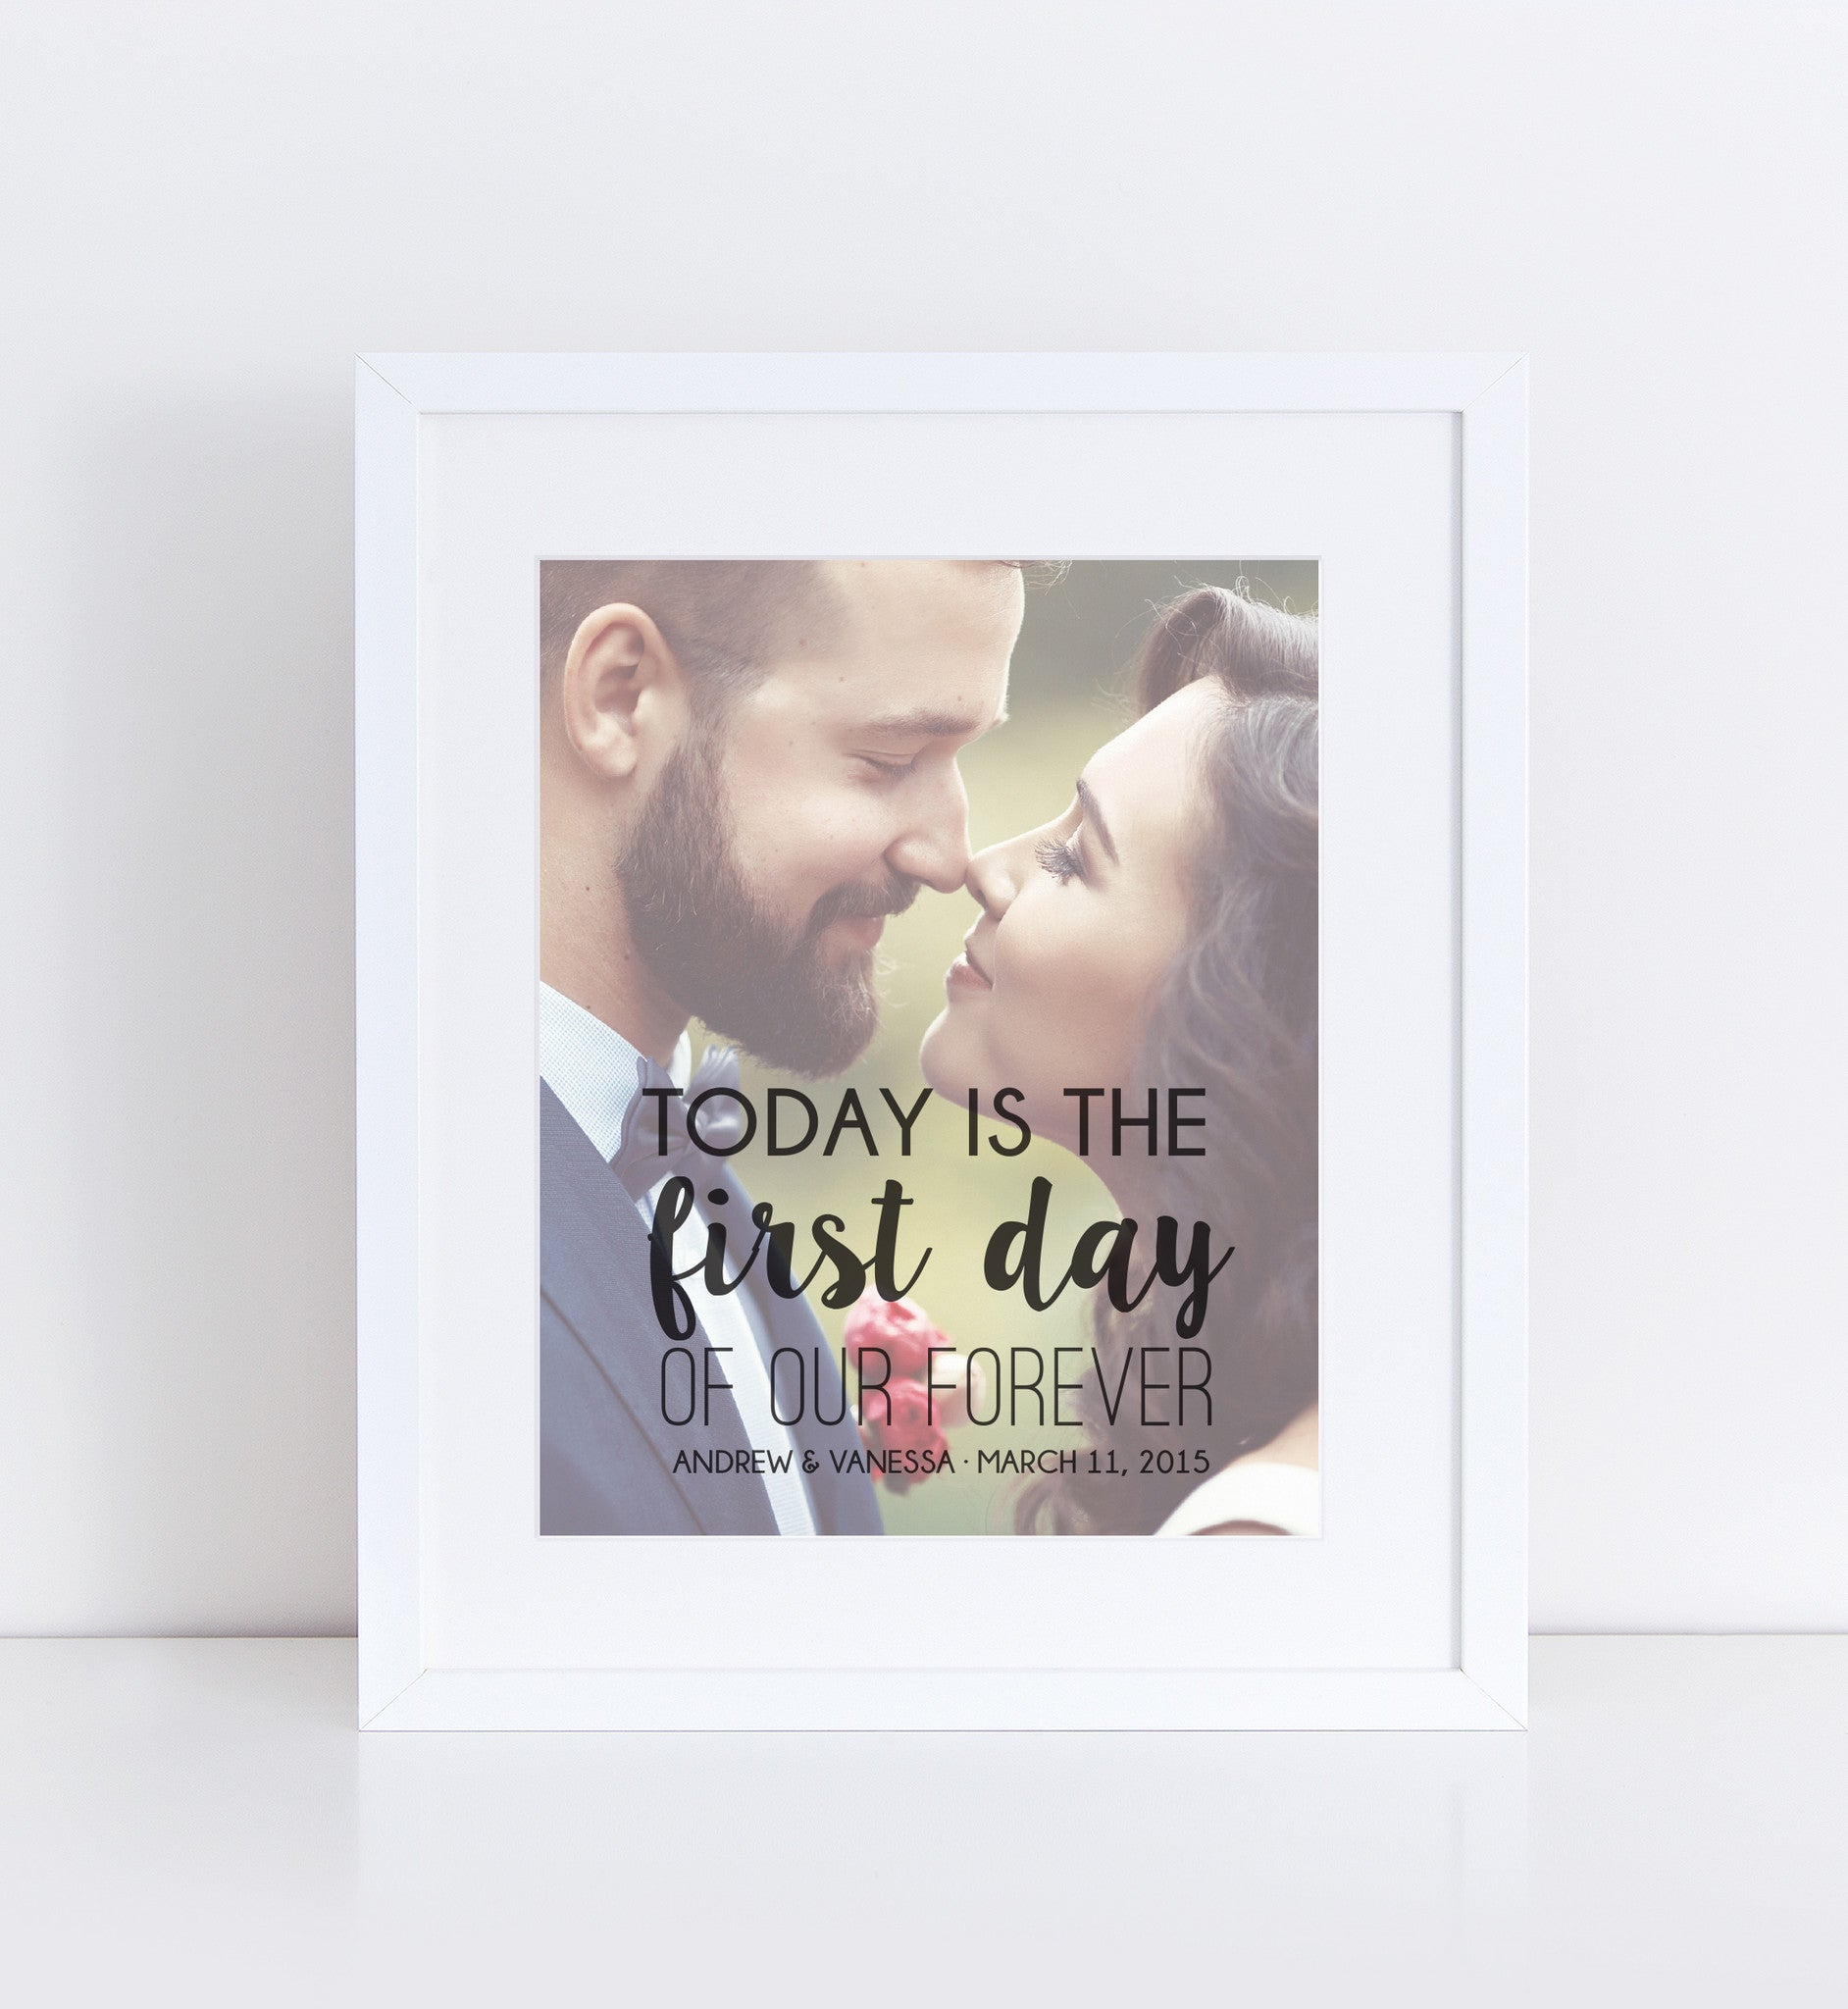 First Day of Our Forever Photo Quote, Personalized Photo Gifts